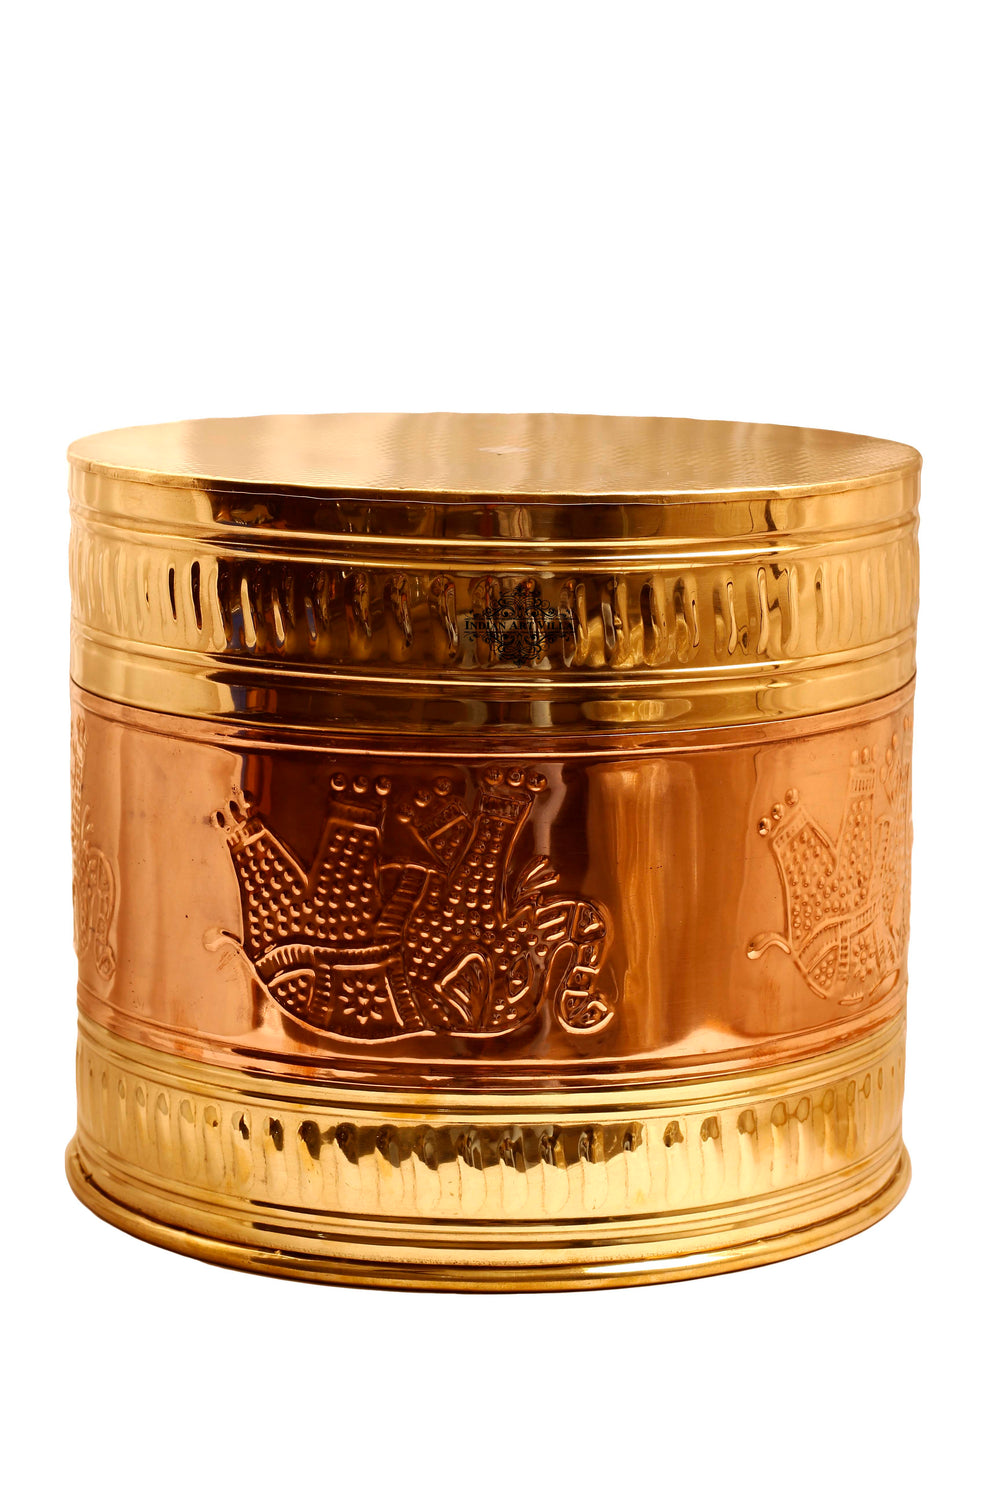 Brass Embossed Design Home Decor Planter